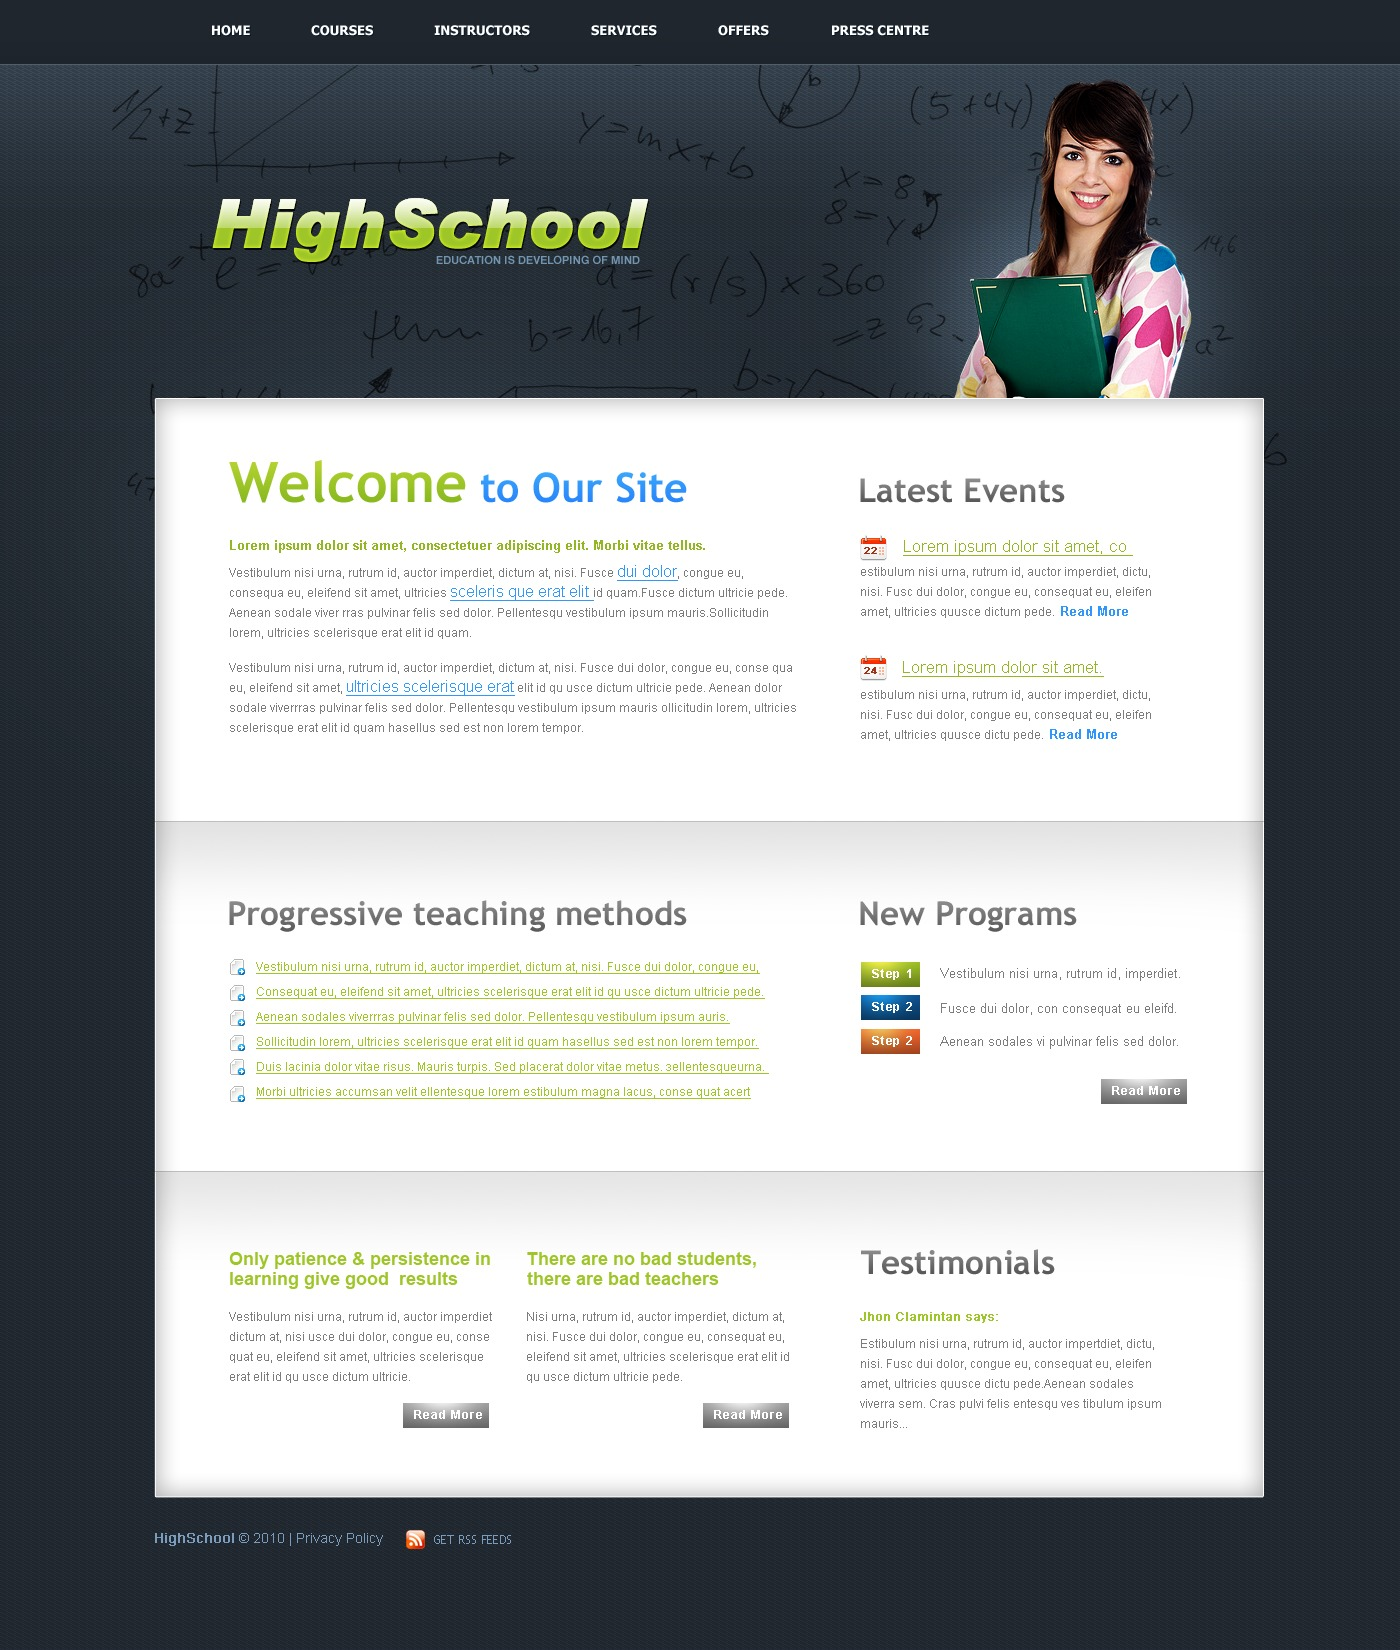 The High School PSD Design 54482, one of the best PSD templates of its kind (education, wide), also known as high school PSD template, education center PSD template, college PSD template, science PSD template, admission PSD template, faculty PSD template, department PSD template, class PSD template, alumni PSD template, student PSD template, professor PSD template, enrolment PSD template, union PSD template, library PSD template, auditorium PSD template, graduate PSD template, direction PSD template, tests PSD template, entrance PSD template, examination PSD template, exam PSD template, sport PSD template, community PSD template, party PSD template, administration PSD template, rector PSD template, head PSD template, dean PSD template, college and related with high school, education center, college, science, admission, faculty, department, class, alumni, student, professor, enrolment, union, library, auditorium, graduate, direction, tests, entrance, examination, exam, sport, community, party, administration, rector, head, dean, college, etc.